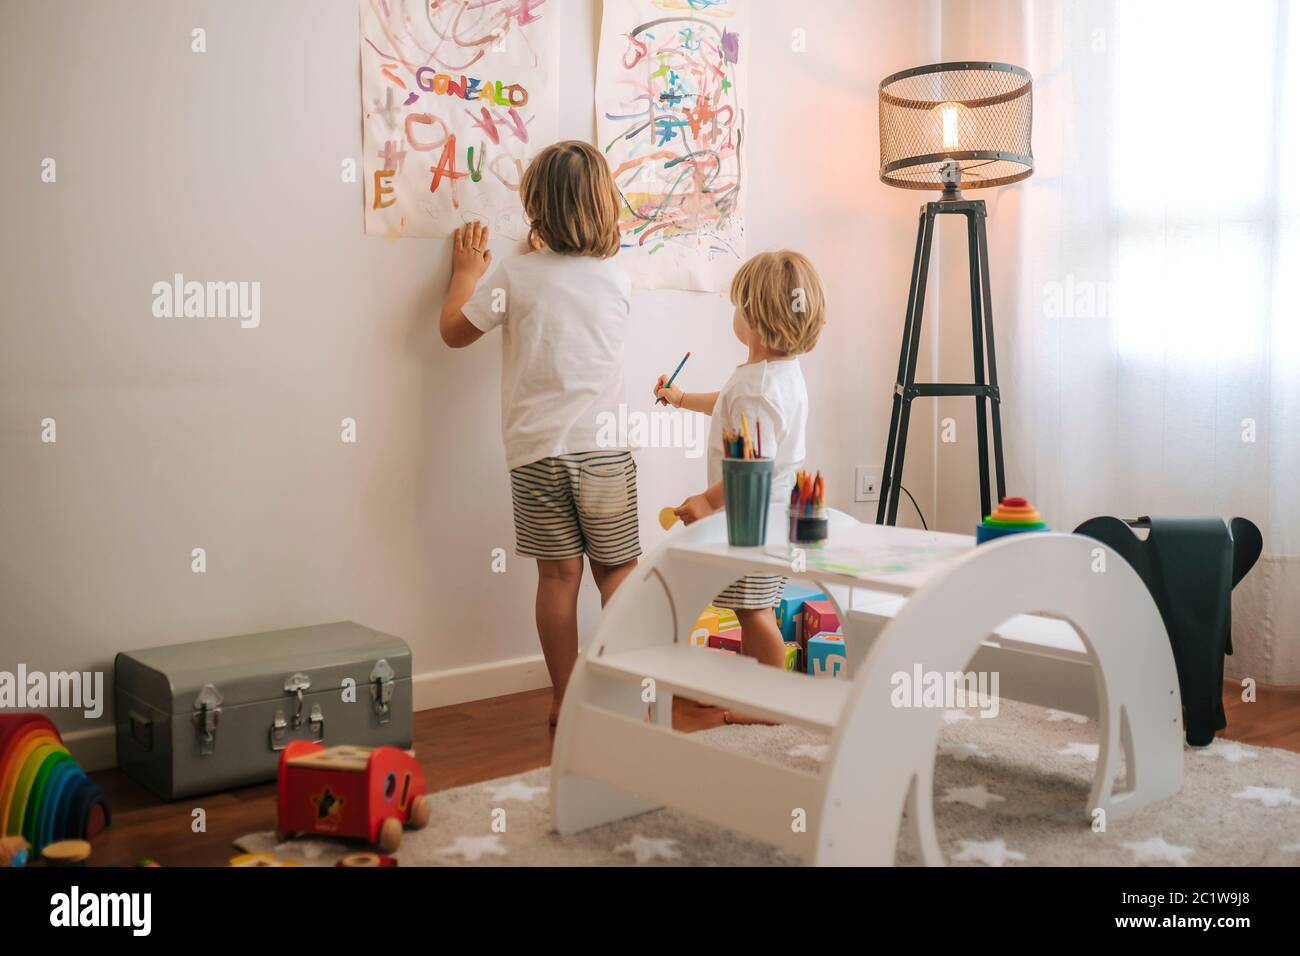 Little blond children plays painting at home. entertainment during quarantine. family at home coronavirus. Stock Photo